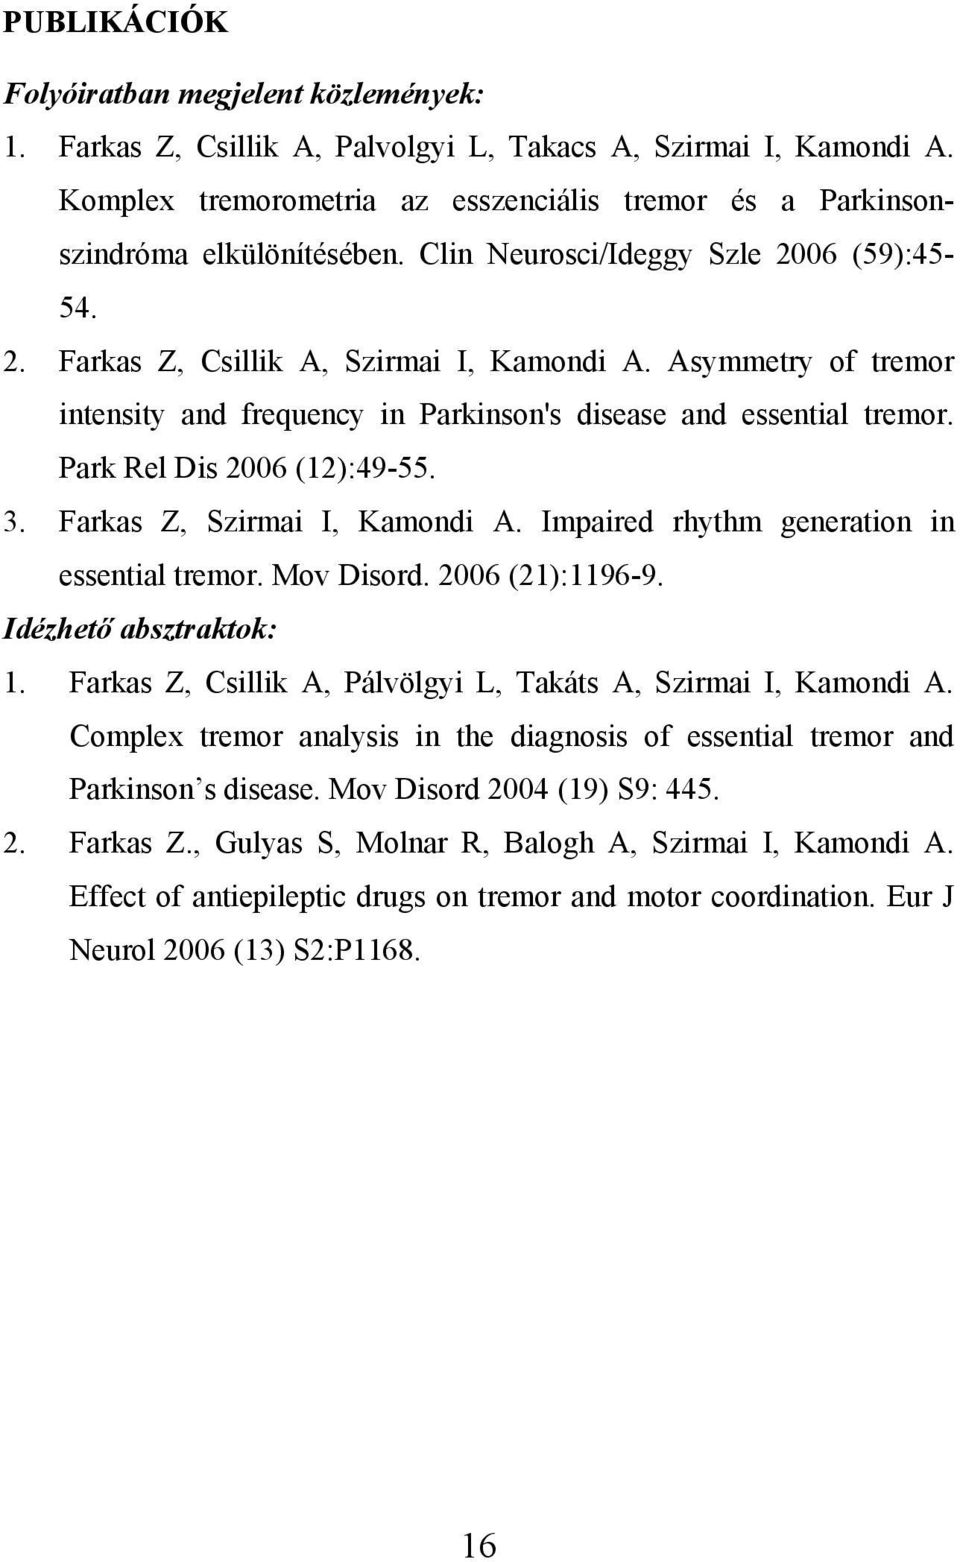 Asymmetry of tremor intensity and frequency in Parkinson's disease and essential tremor. Park Rel Dis 2006 (12):49-55. 3. Farkas Z, Szirmai I, Kamondi A.